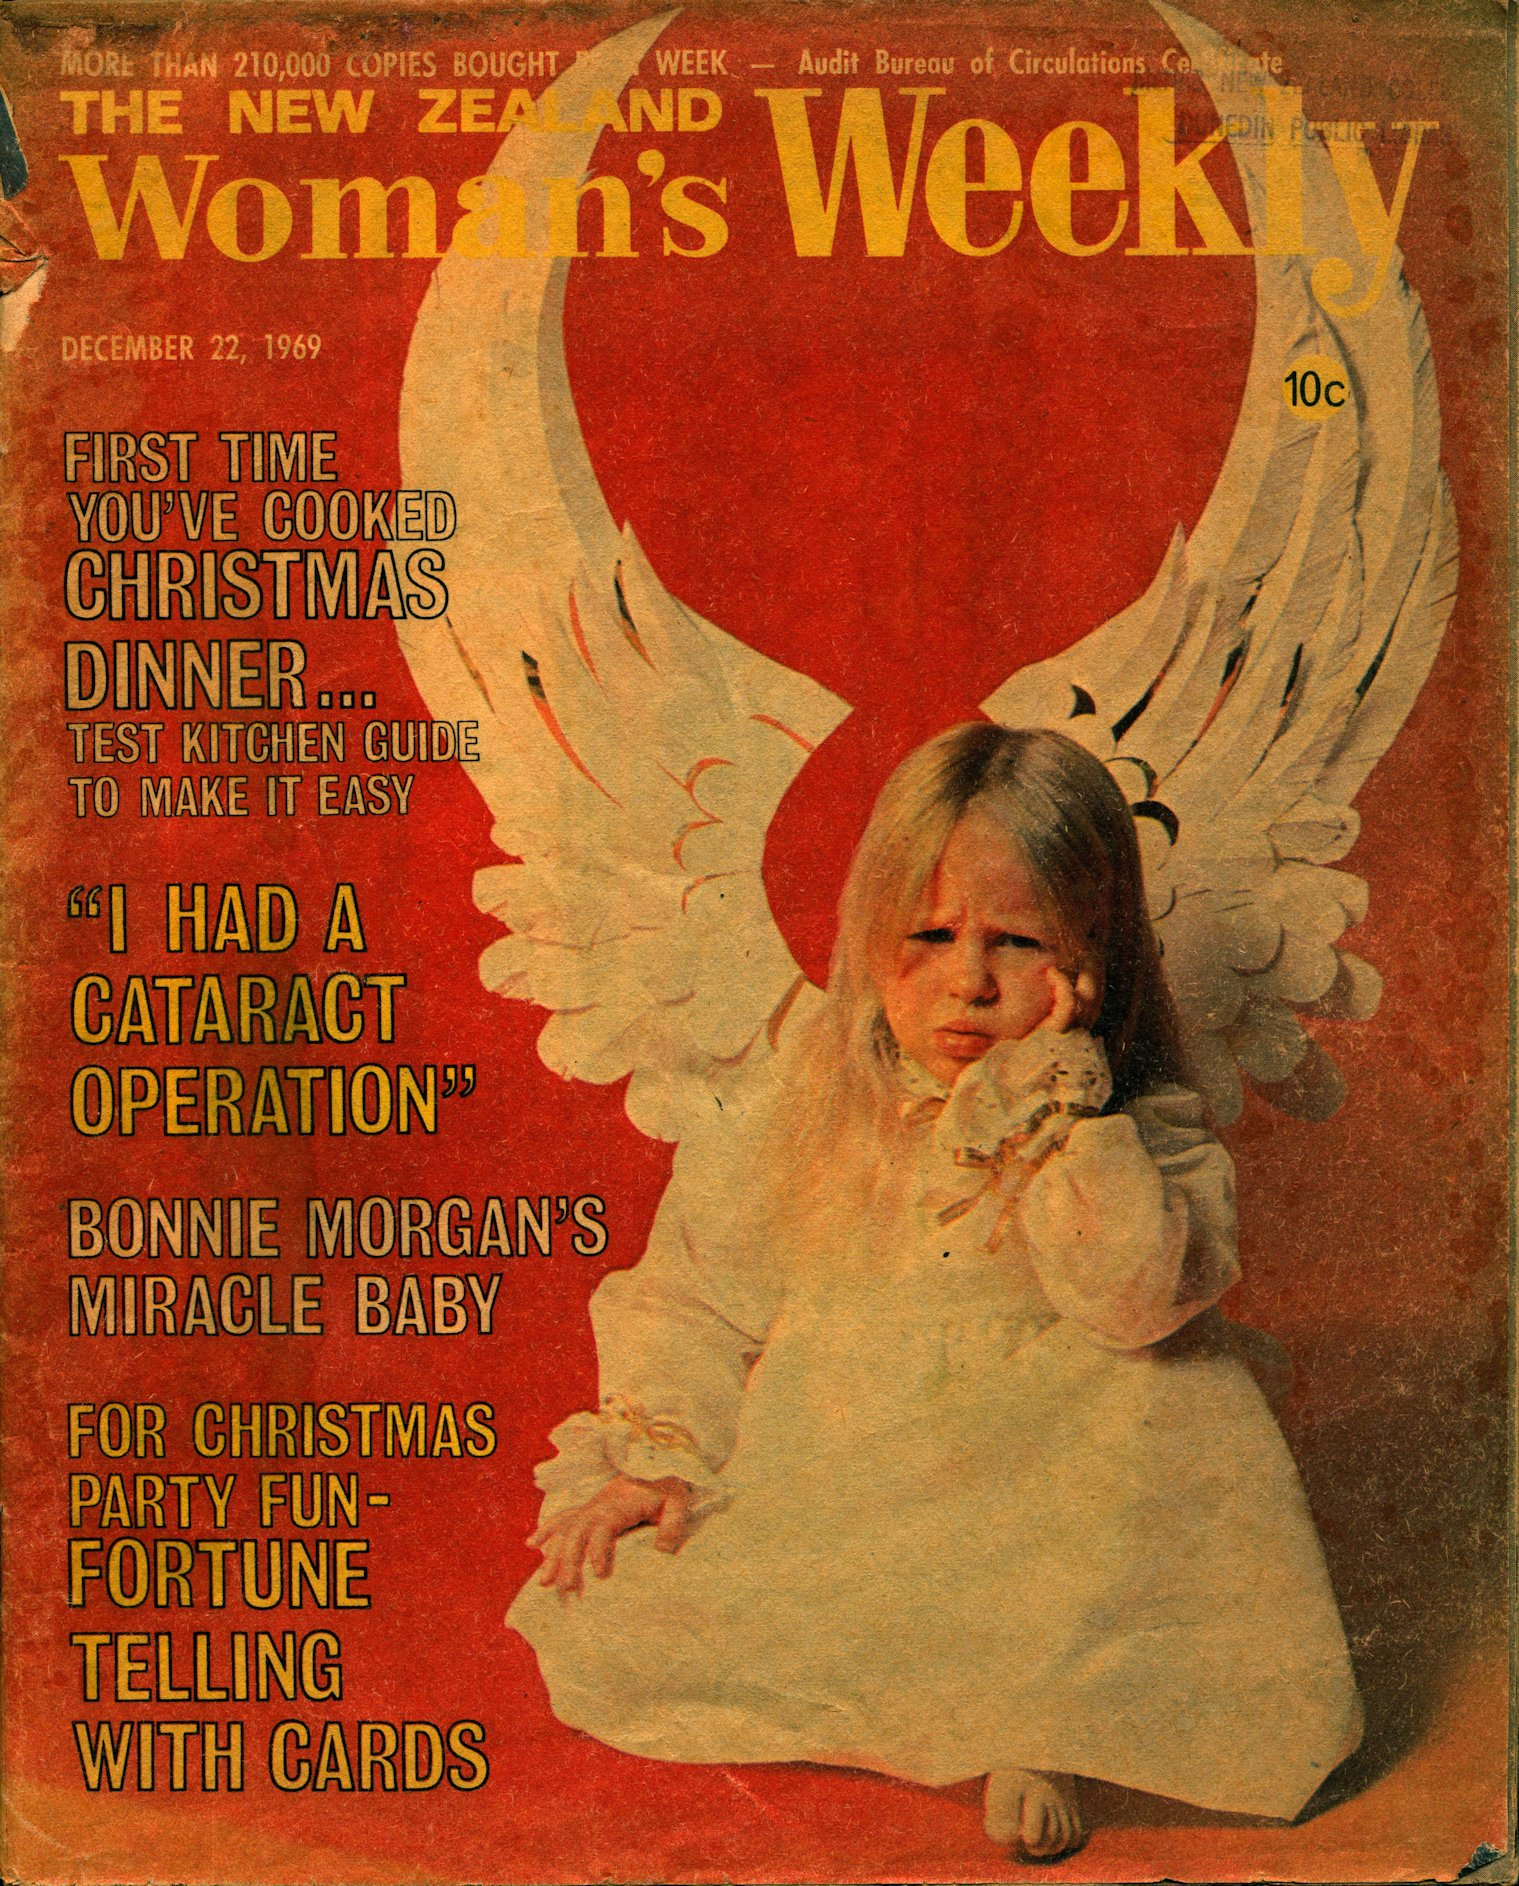 New Zealand Woman's Weekly. December 22 1969.